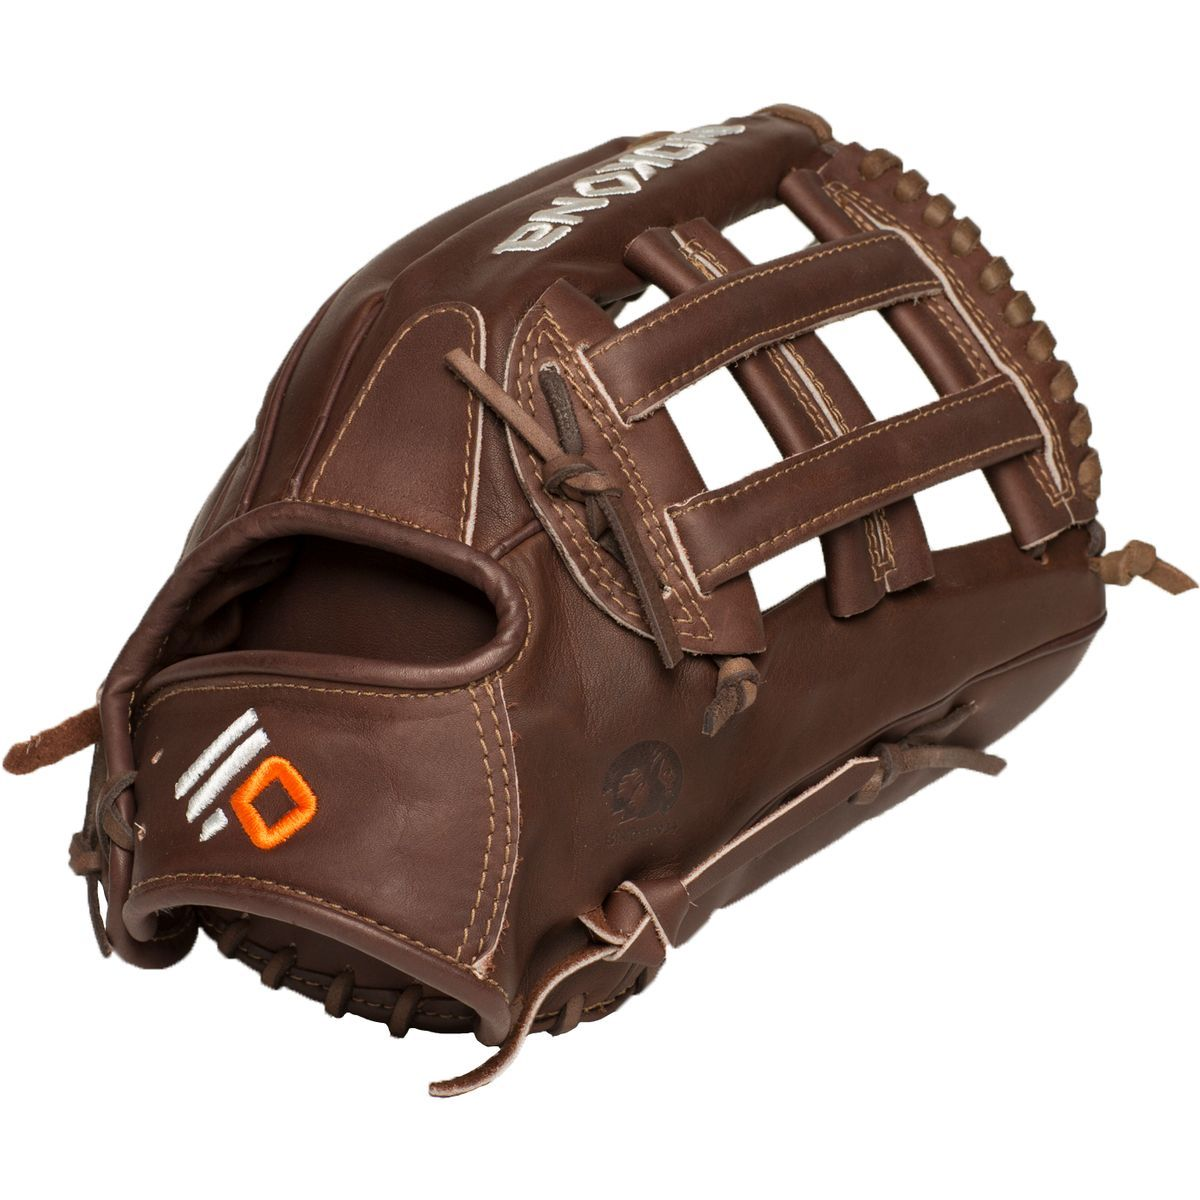 nokona-x2-baseball-glove-12-75-inch-h-web-right-hand-throw X2-1275H-RightHandThrow  808808890157 Nokona's elite performance ready-for-play position-specific series. The X2 Elite™ is made